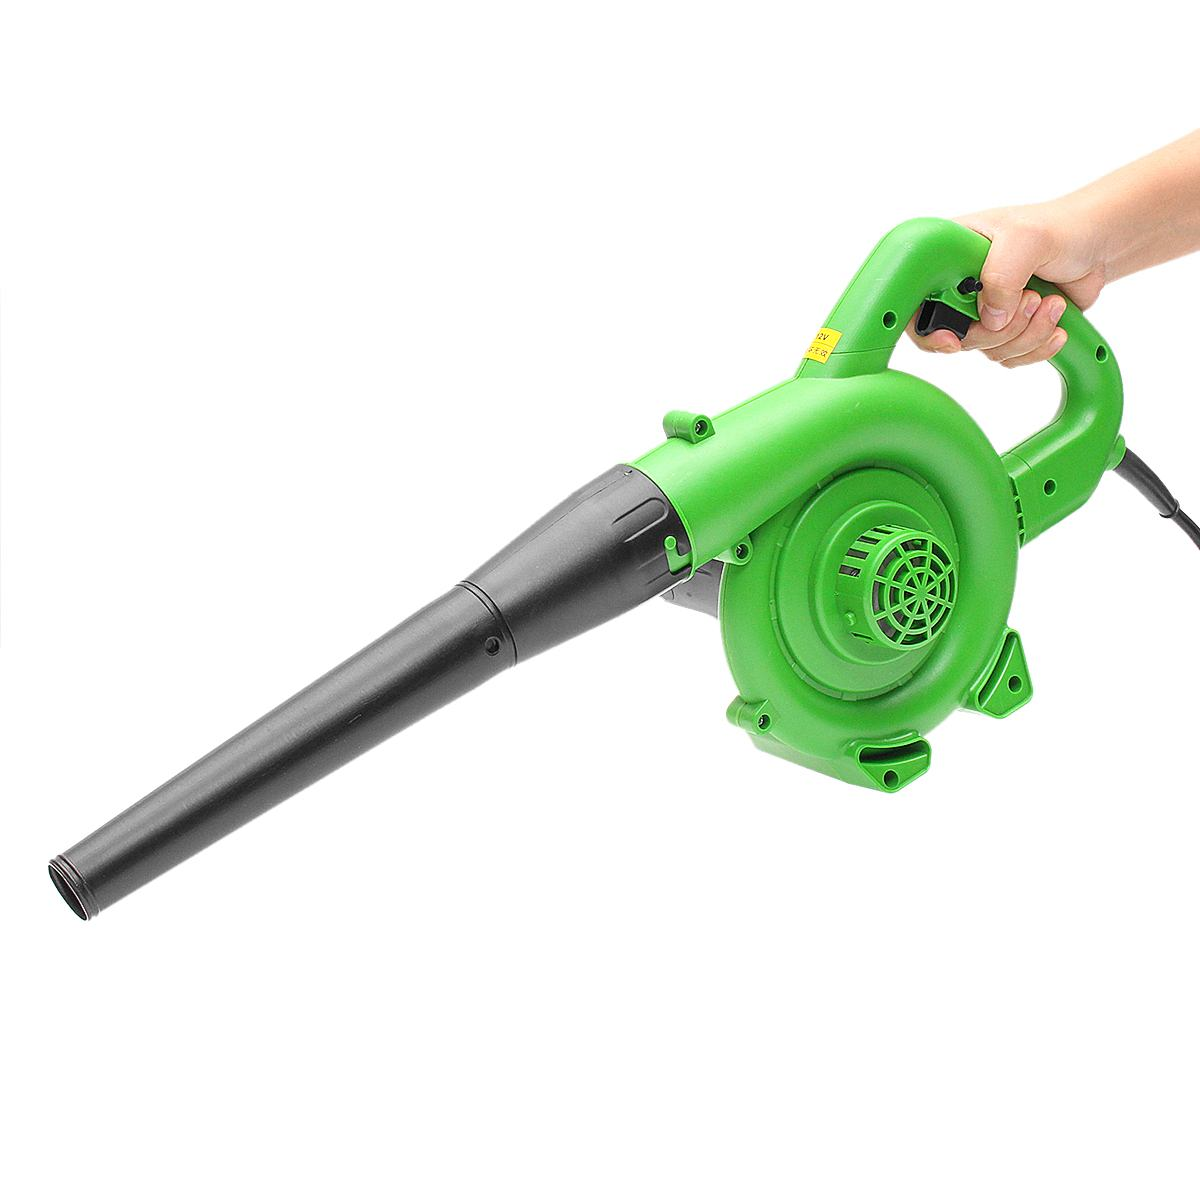 1200W Portable Computer Cleaner Electric Air Blower Handheld Garden Leaf Collector Car Computer Dust Air Blowing Cleaner Tool